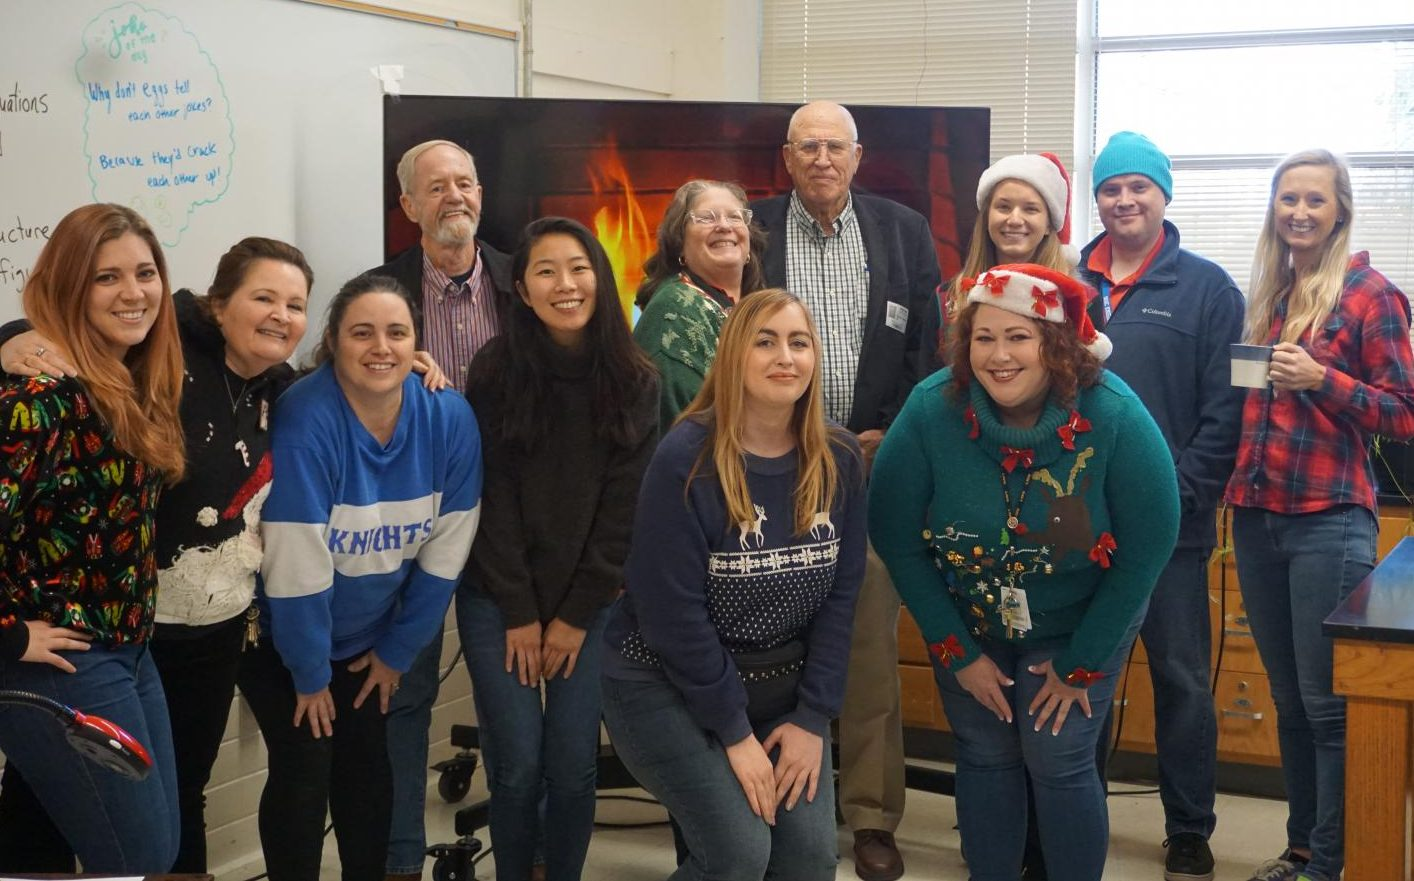 The science department, including former science teachers Robert Lehman and Richard Whisennand, pose for a group photo at the annual department holiday party on Wednesday, Dec. 18, in Mr. Ely's room. Photo by Lindsey Plotkin.